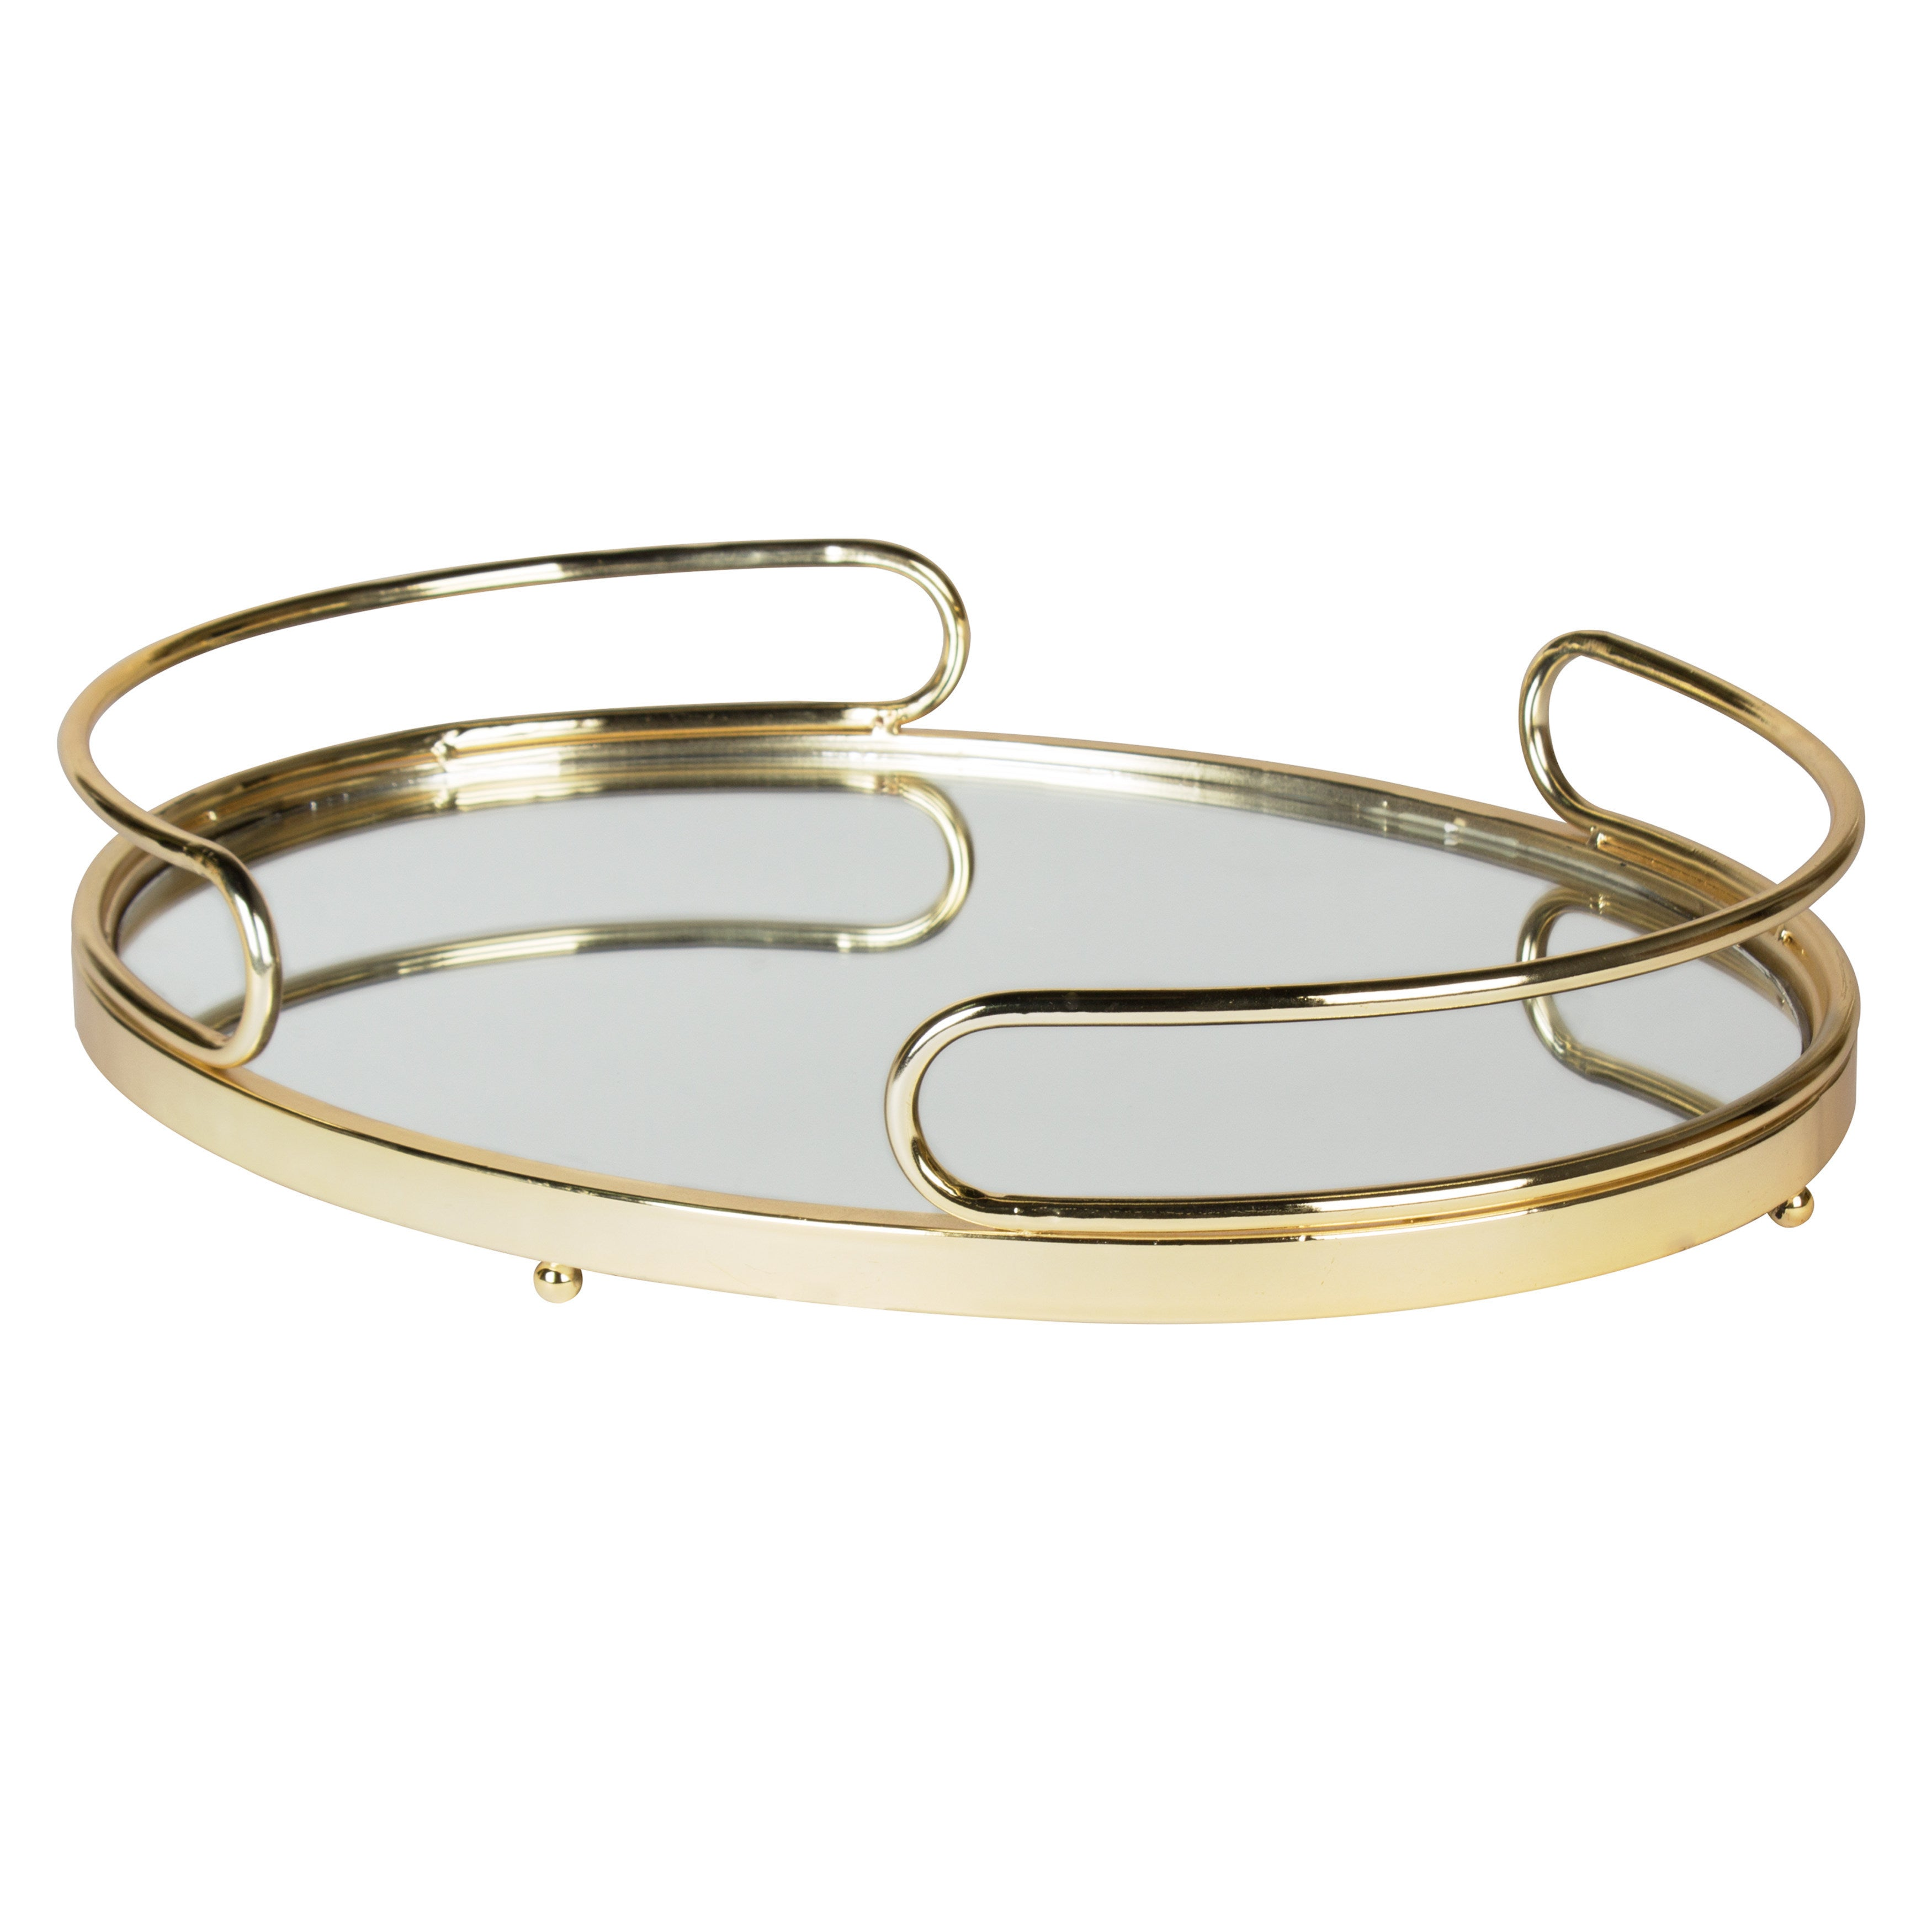 decor and gold products nook tray cranny plates decorative